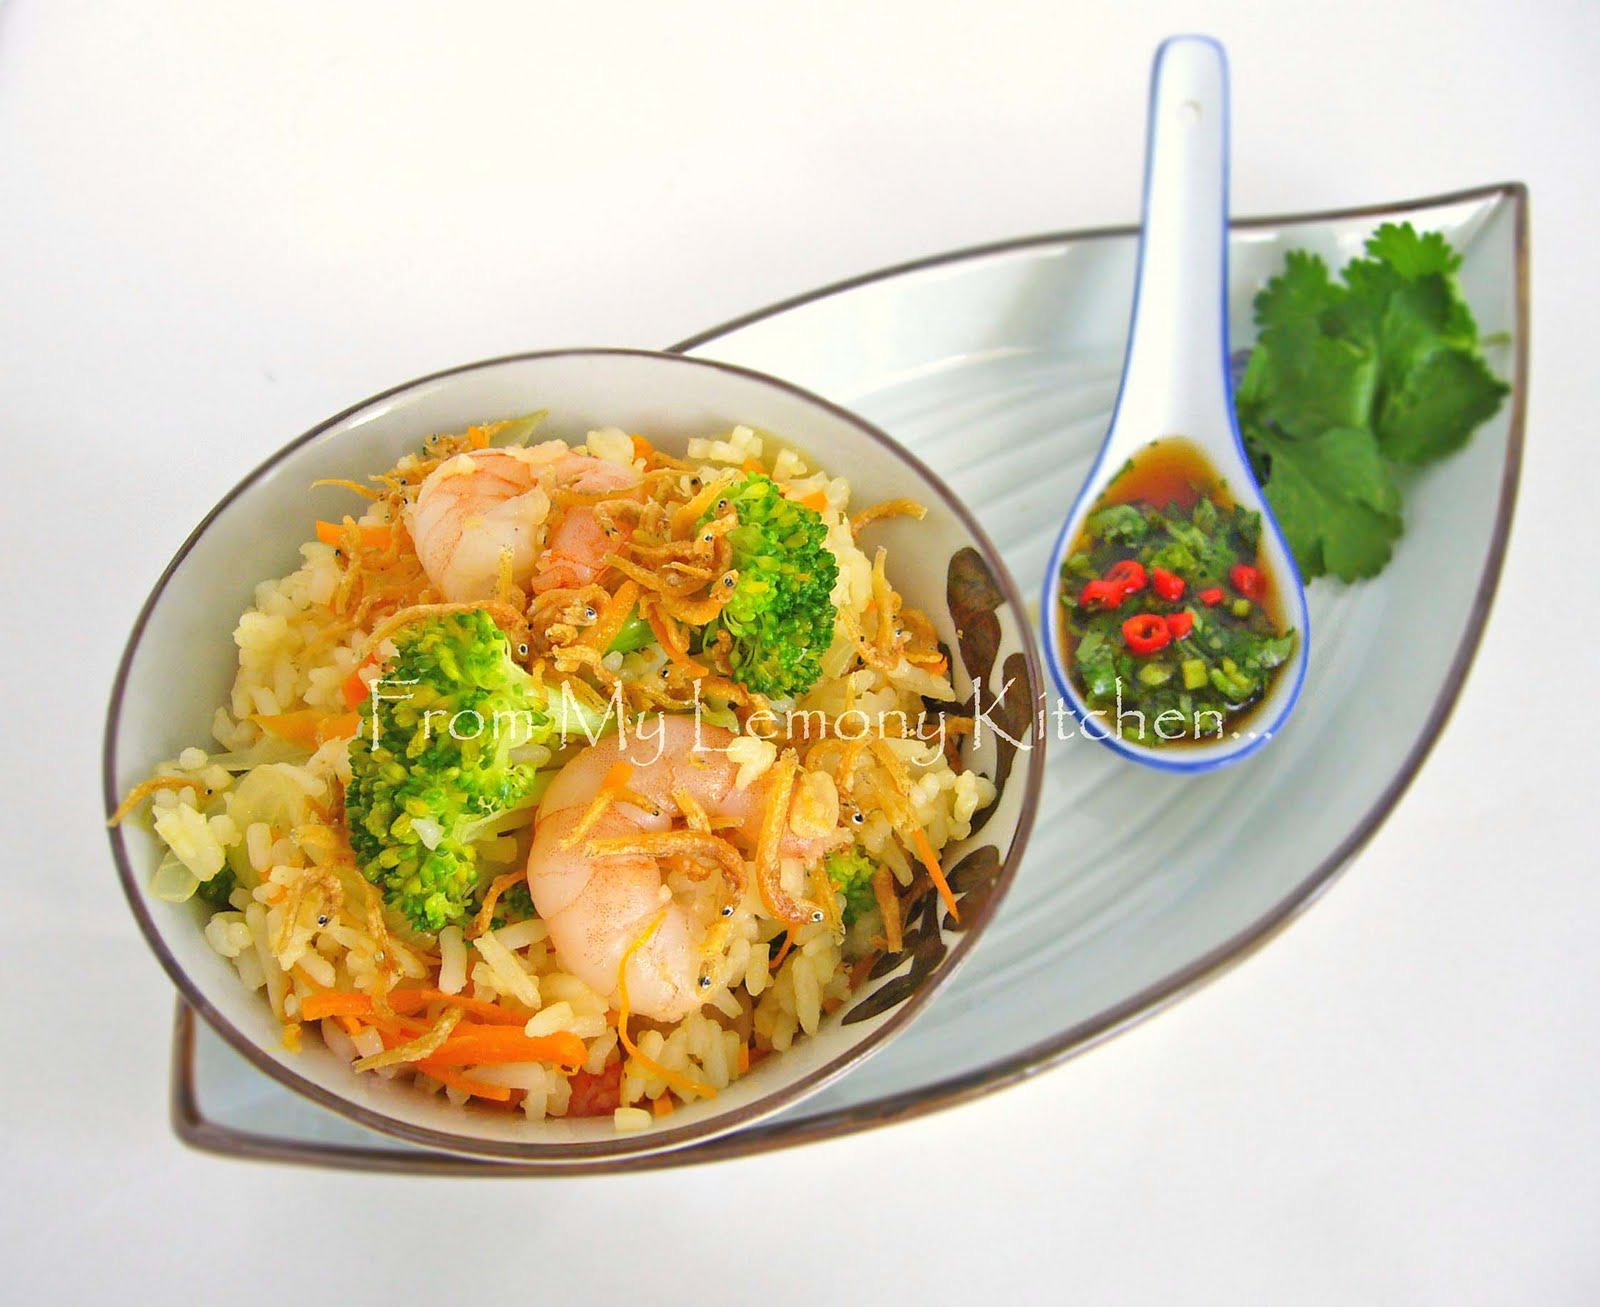 Prawns and silver fish fried rice lisa 39 s lemony kitchen for Fish and rice diet